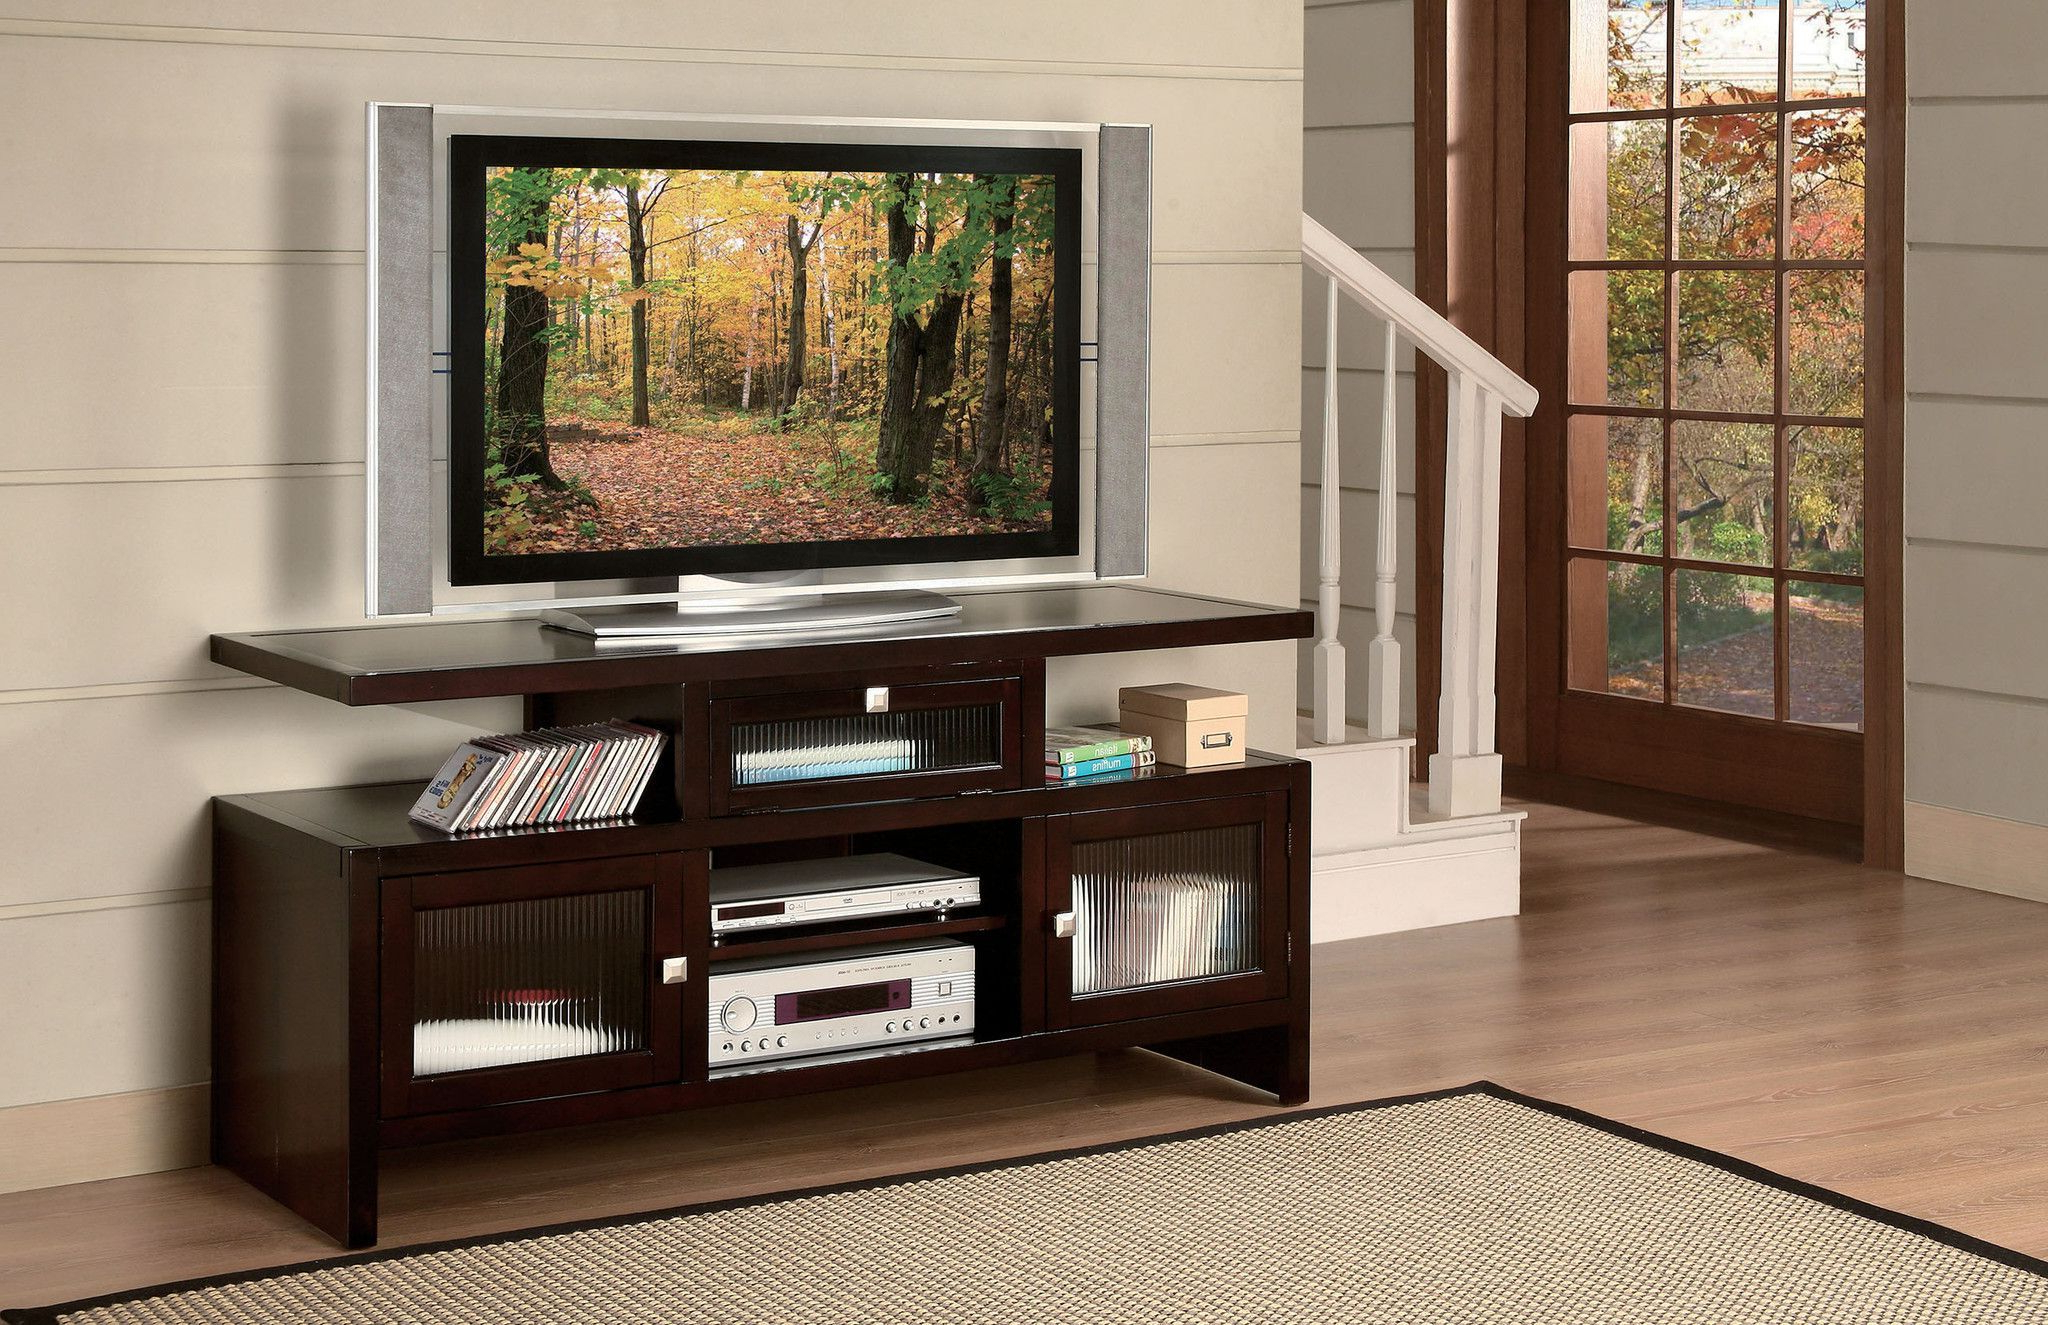 Folding Tv Stand | Tv Stand | Pinterest | Furniture, Acme Furniture Pertaining To Forma 65 Inch Tv Stands (Gallery 16 of 20)